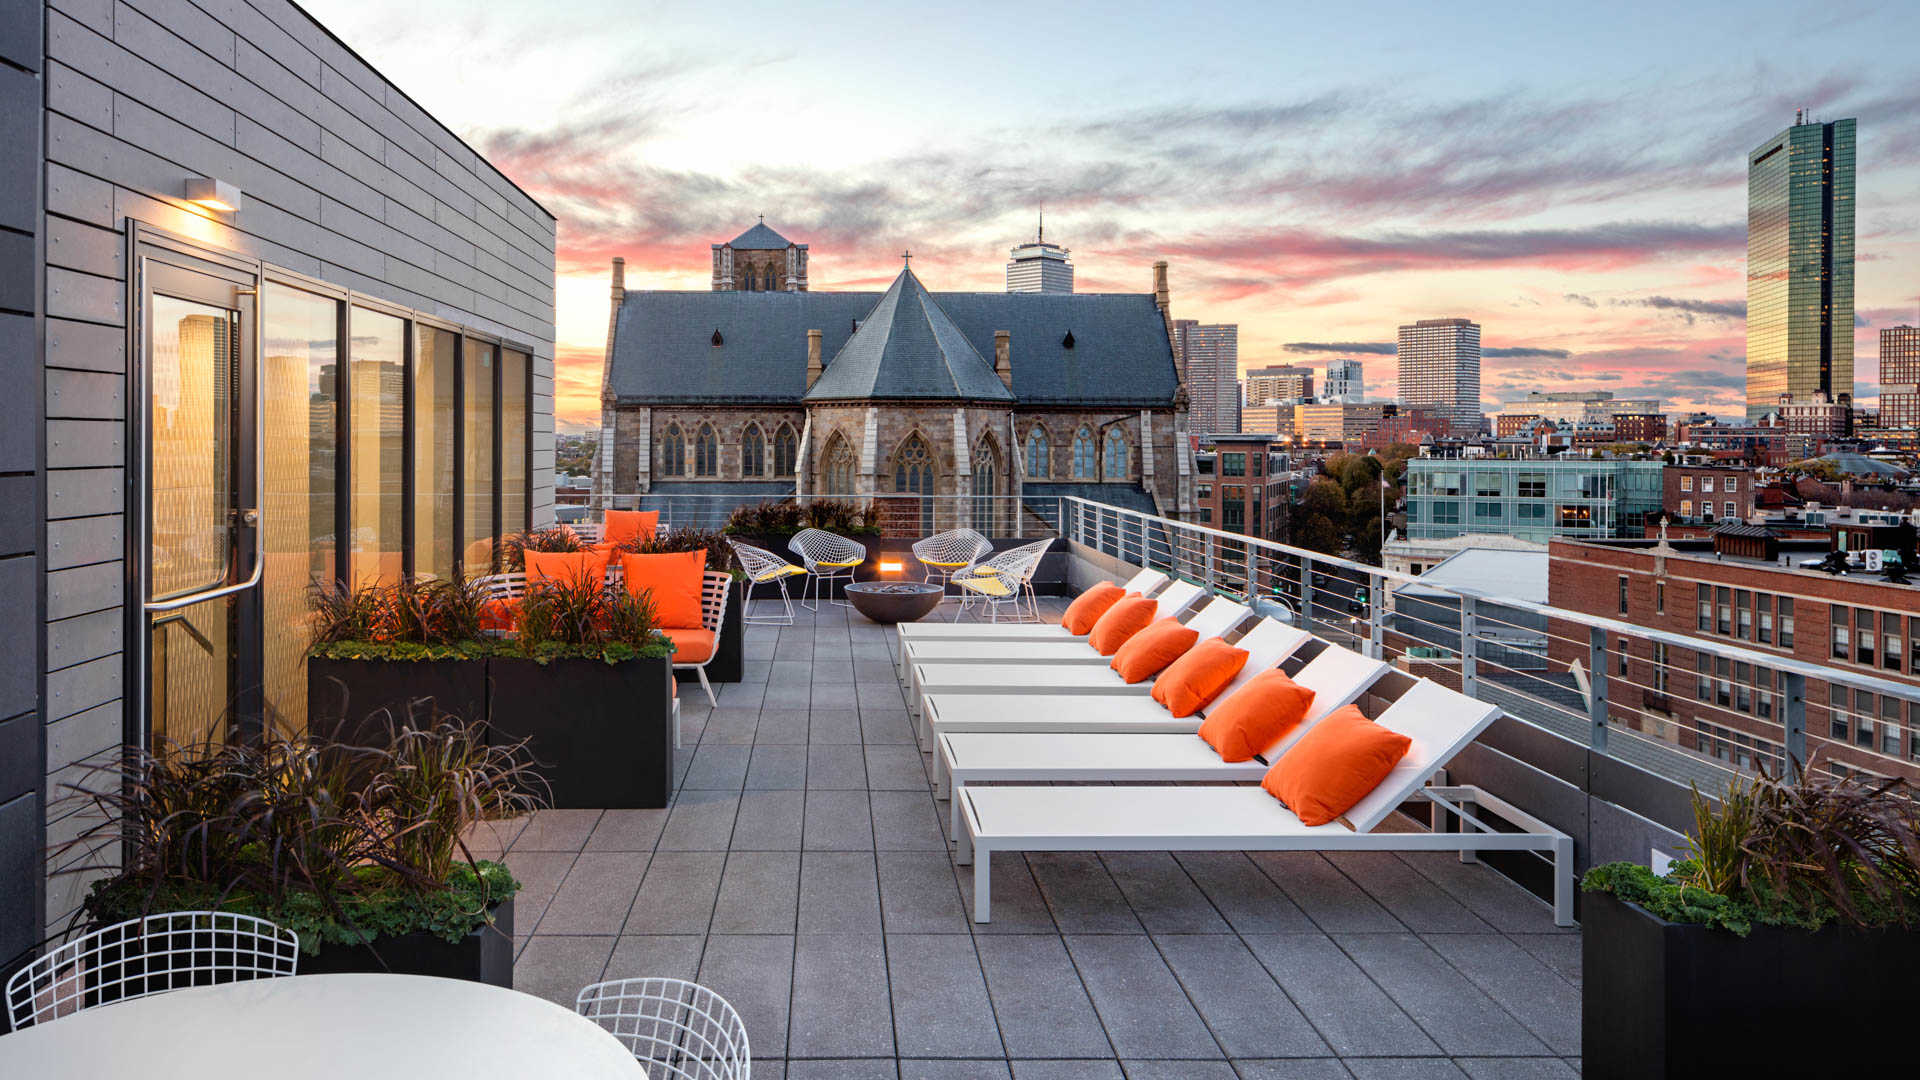 Girard apartments roofdeck